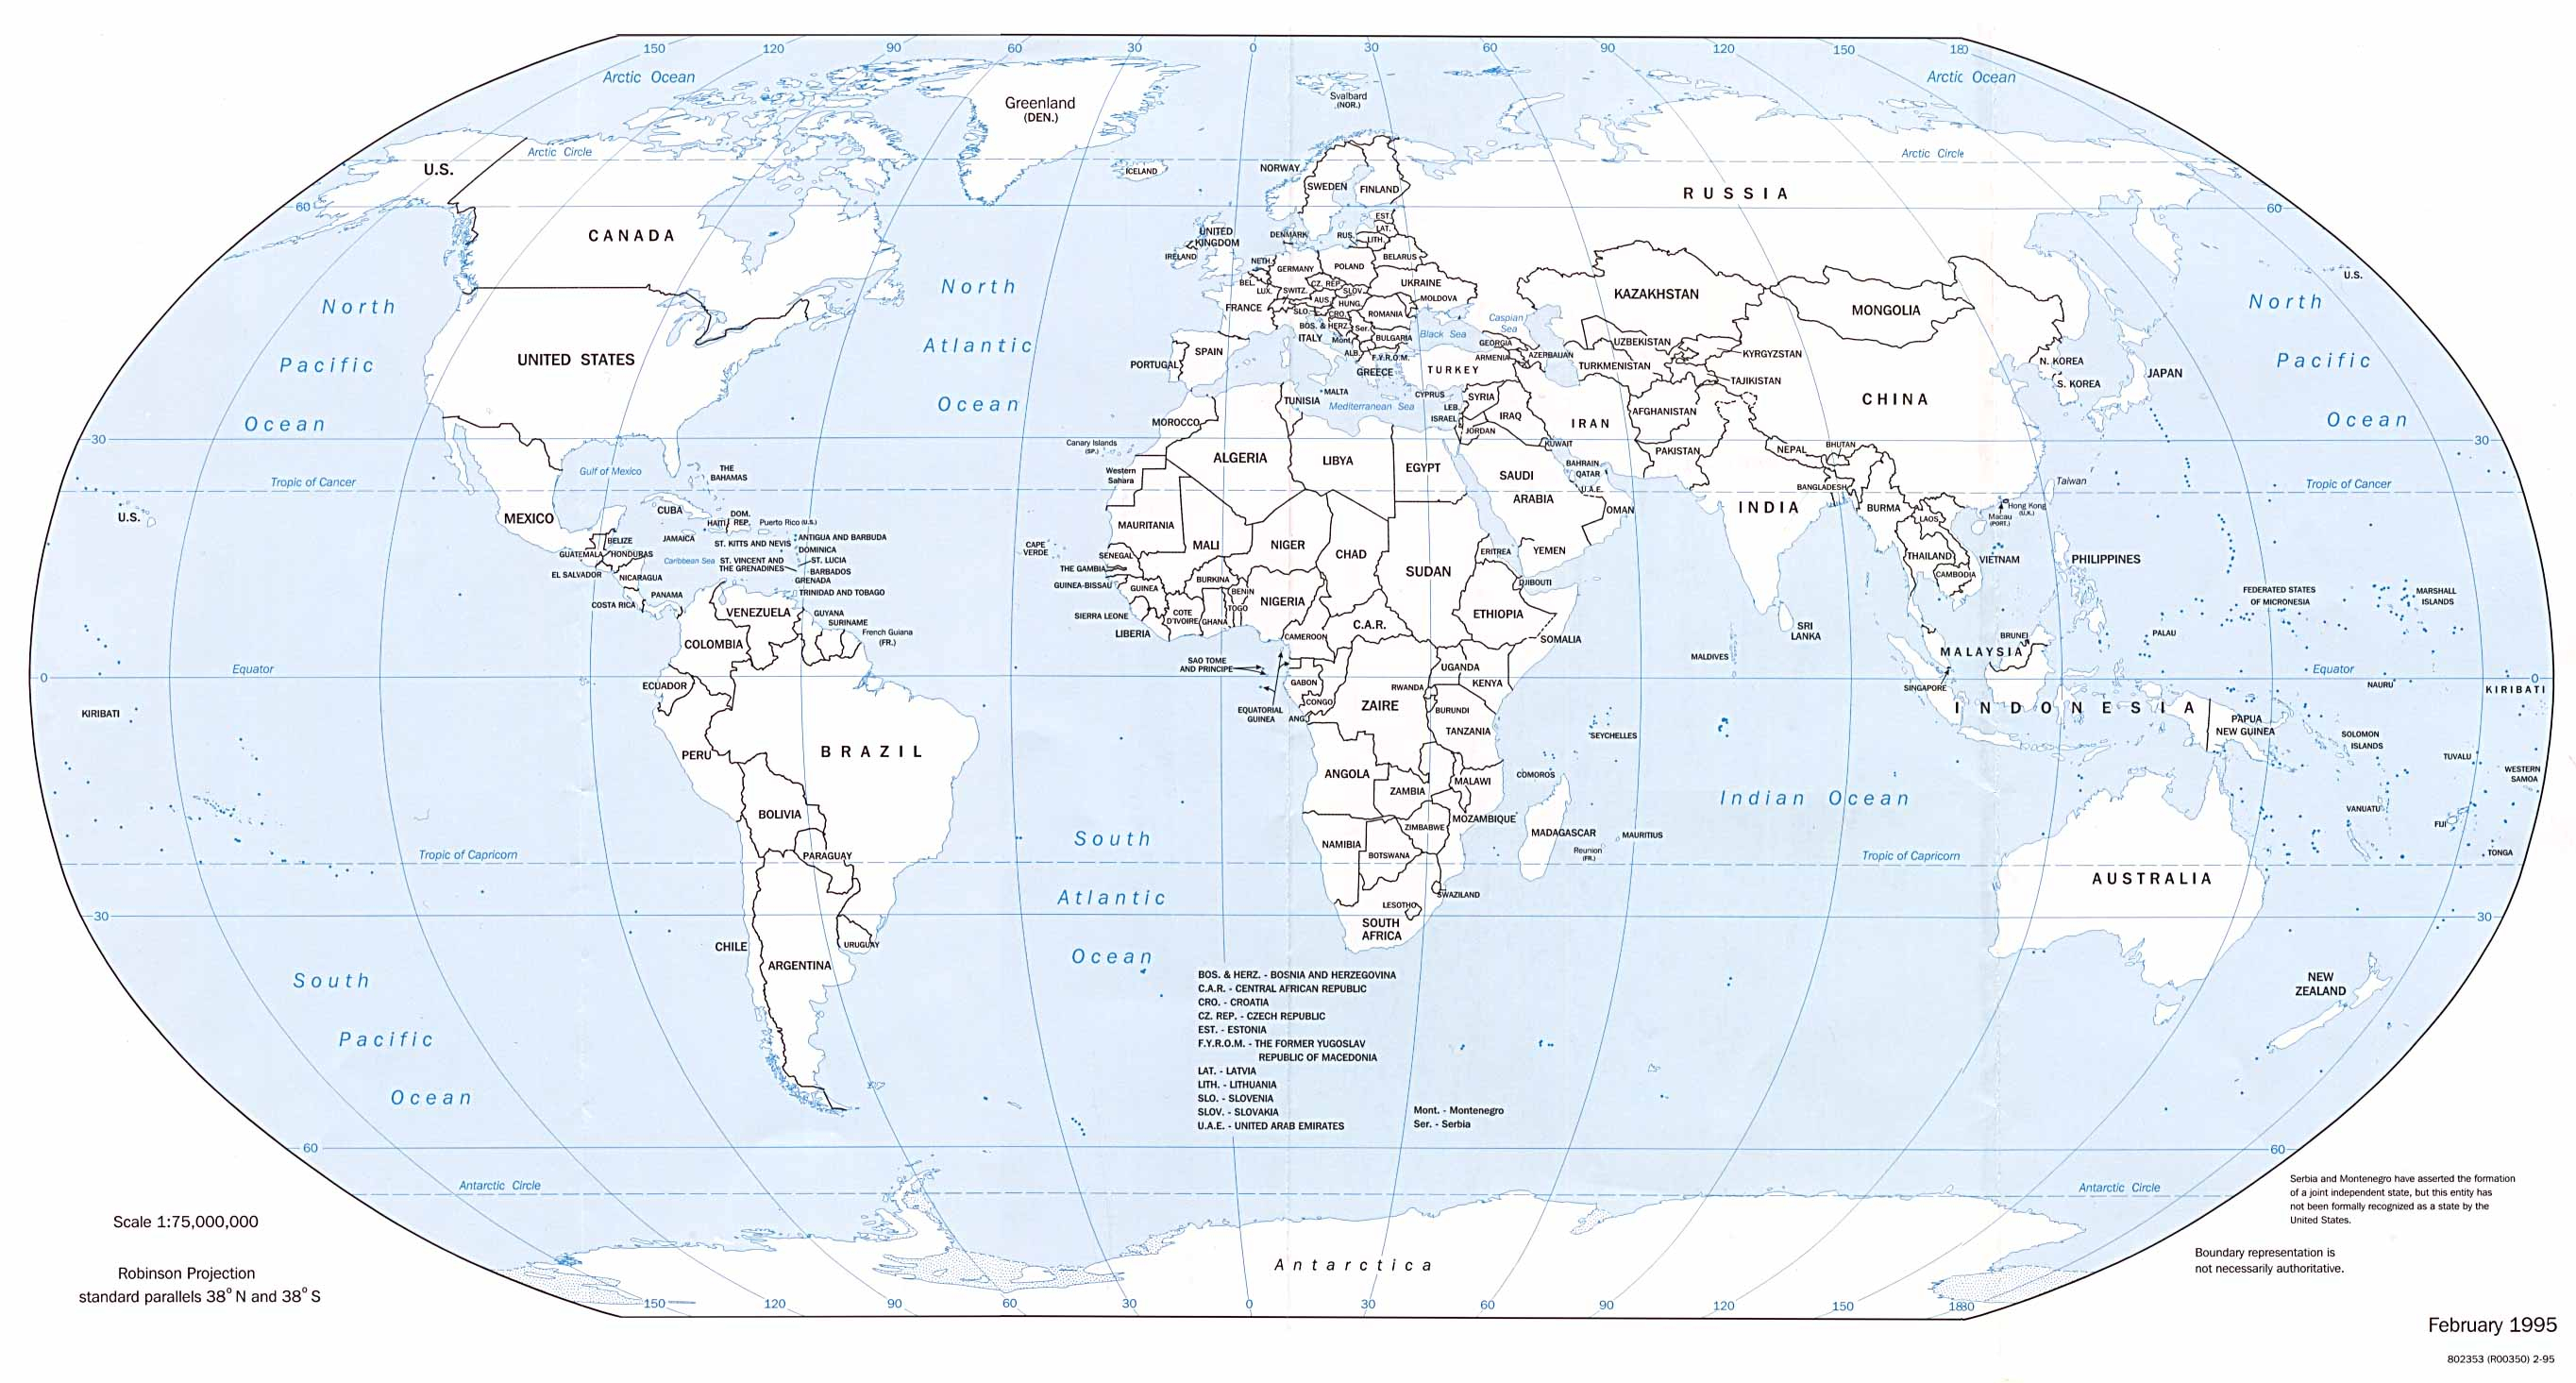 Free Printable World Map With Countries Labeled And Travel - Free Printable World Map With Countries Labeled